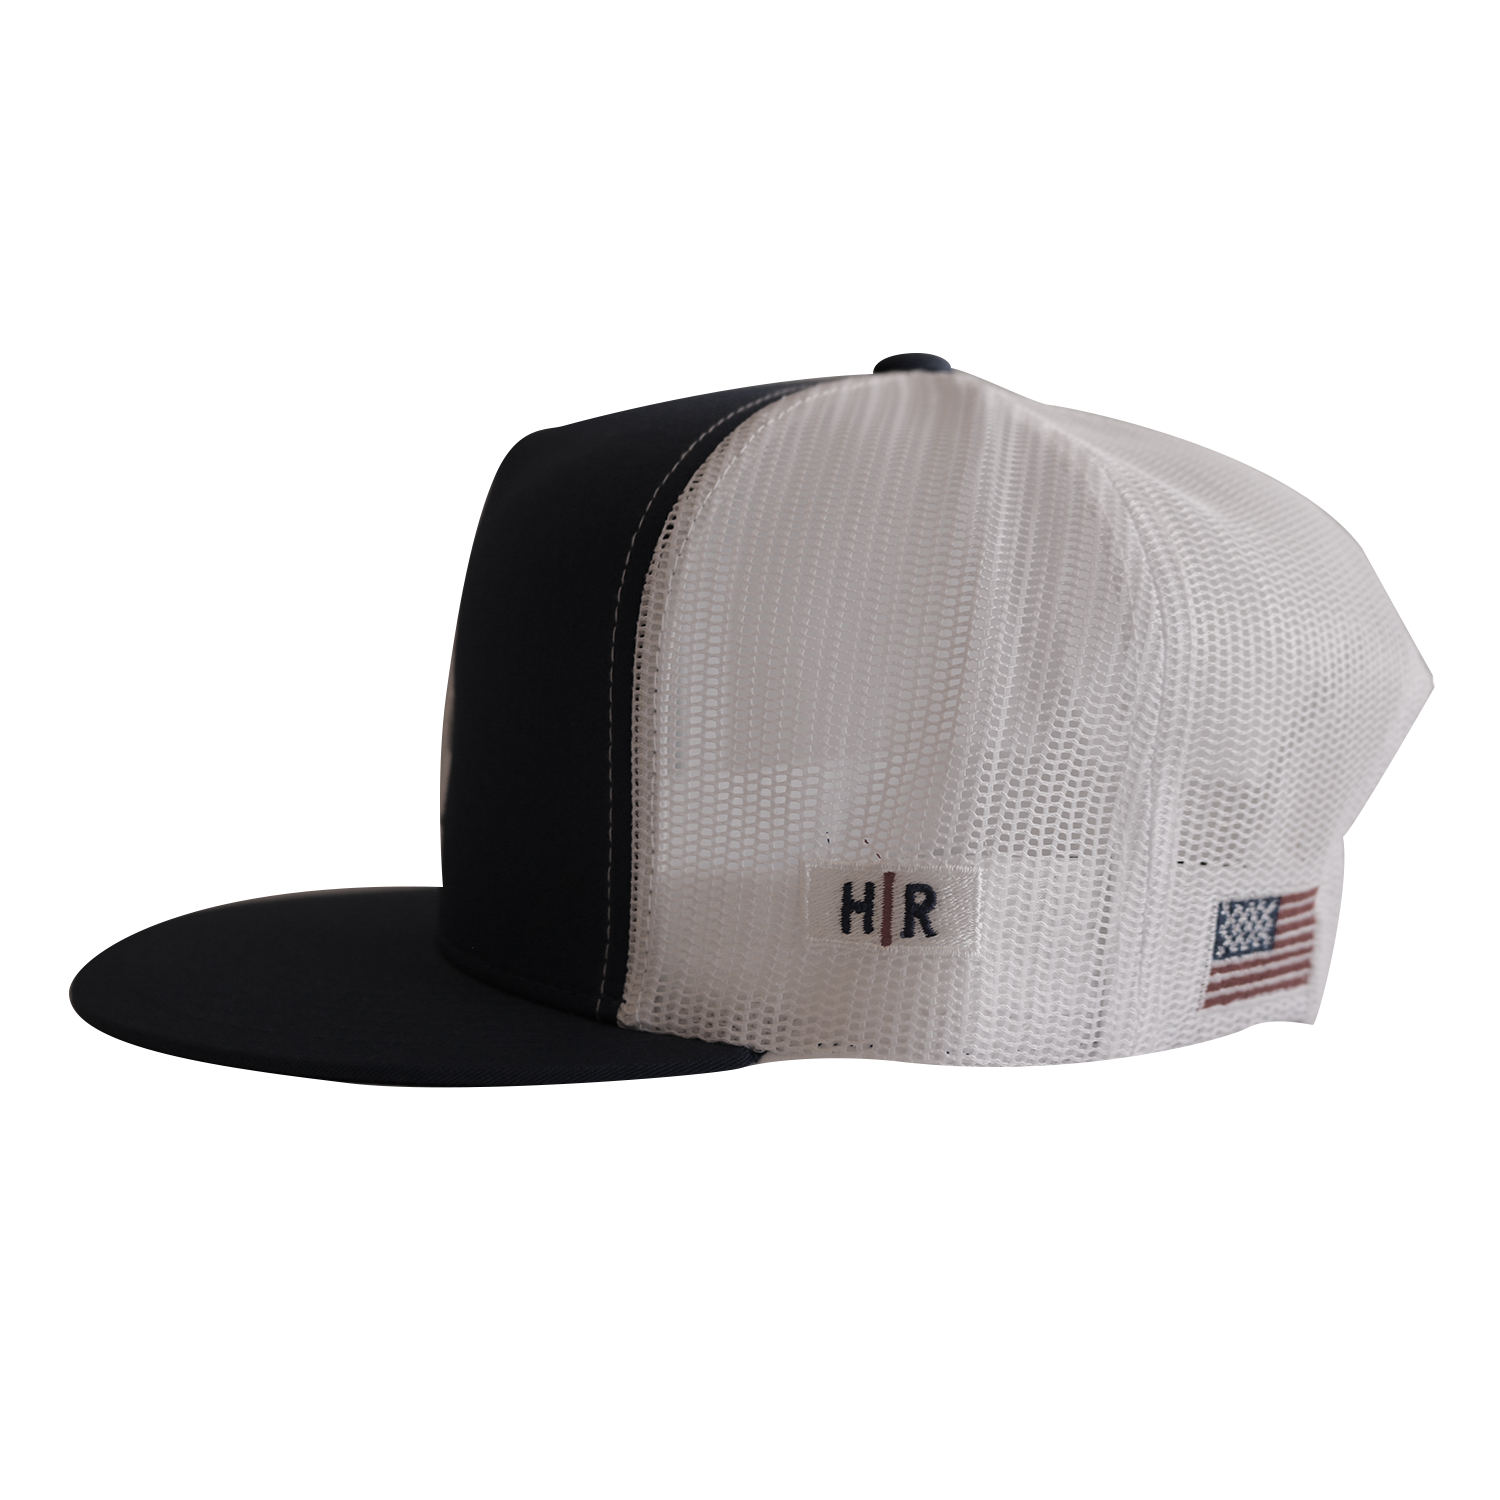 Signature LA Trucker Hat (Black White)